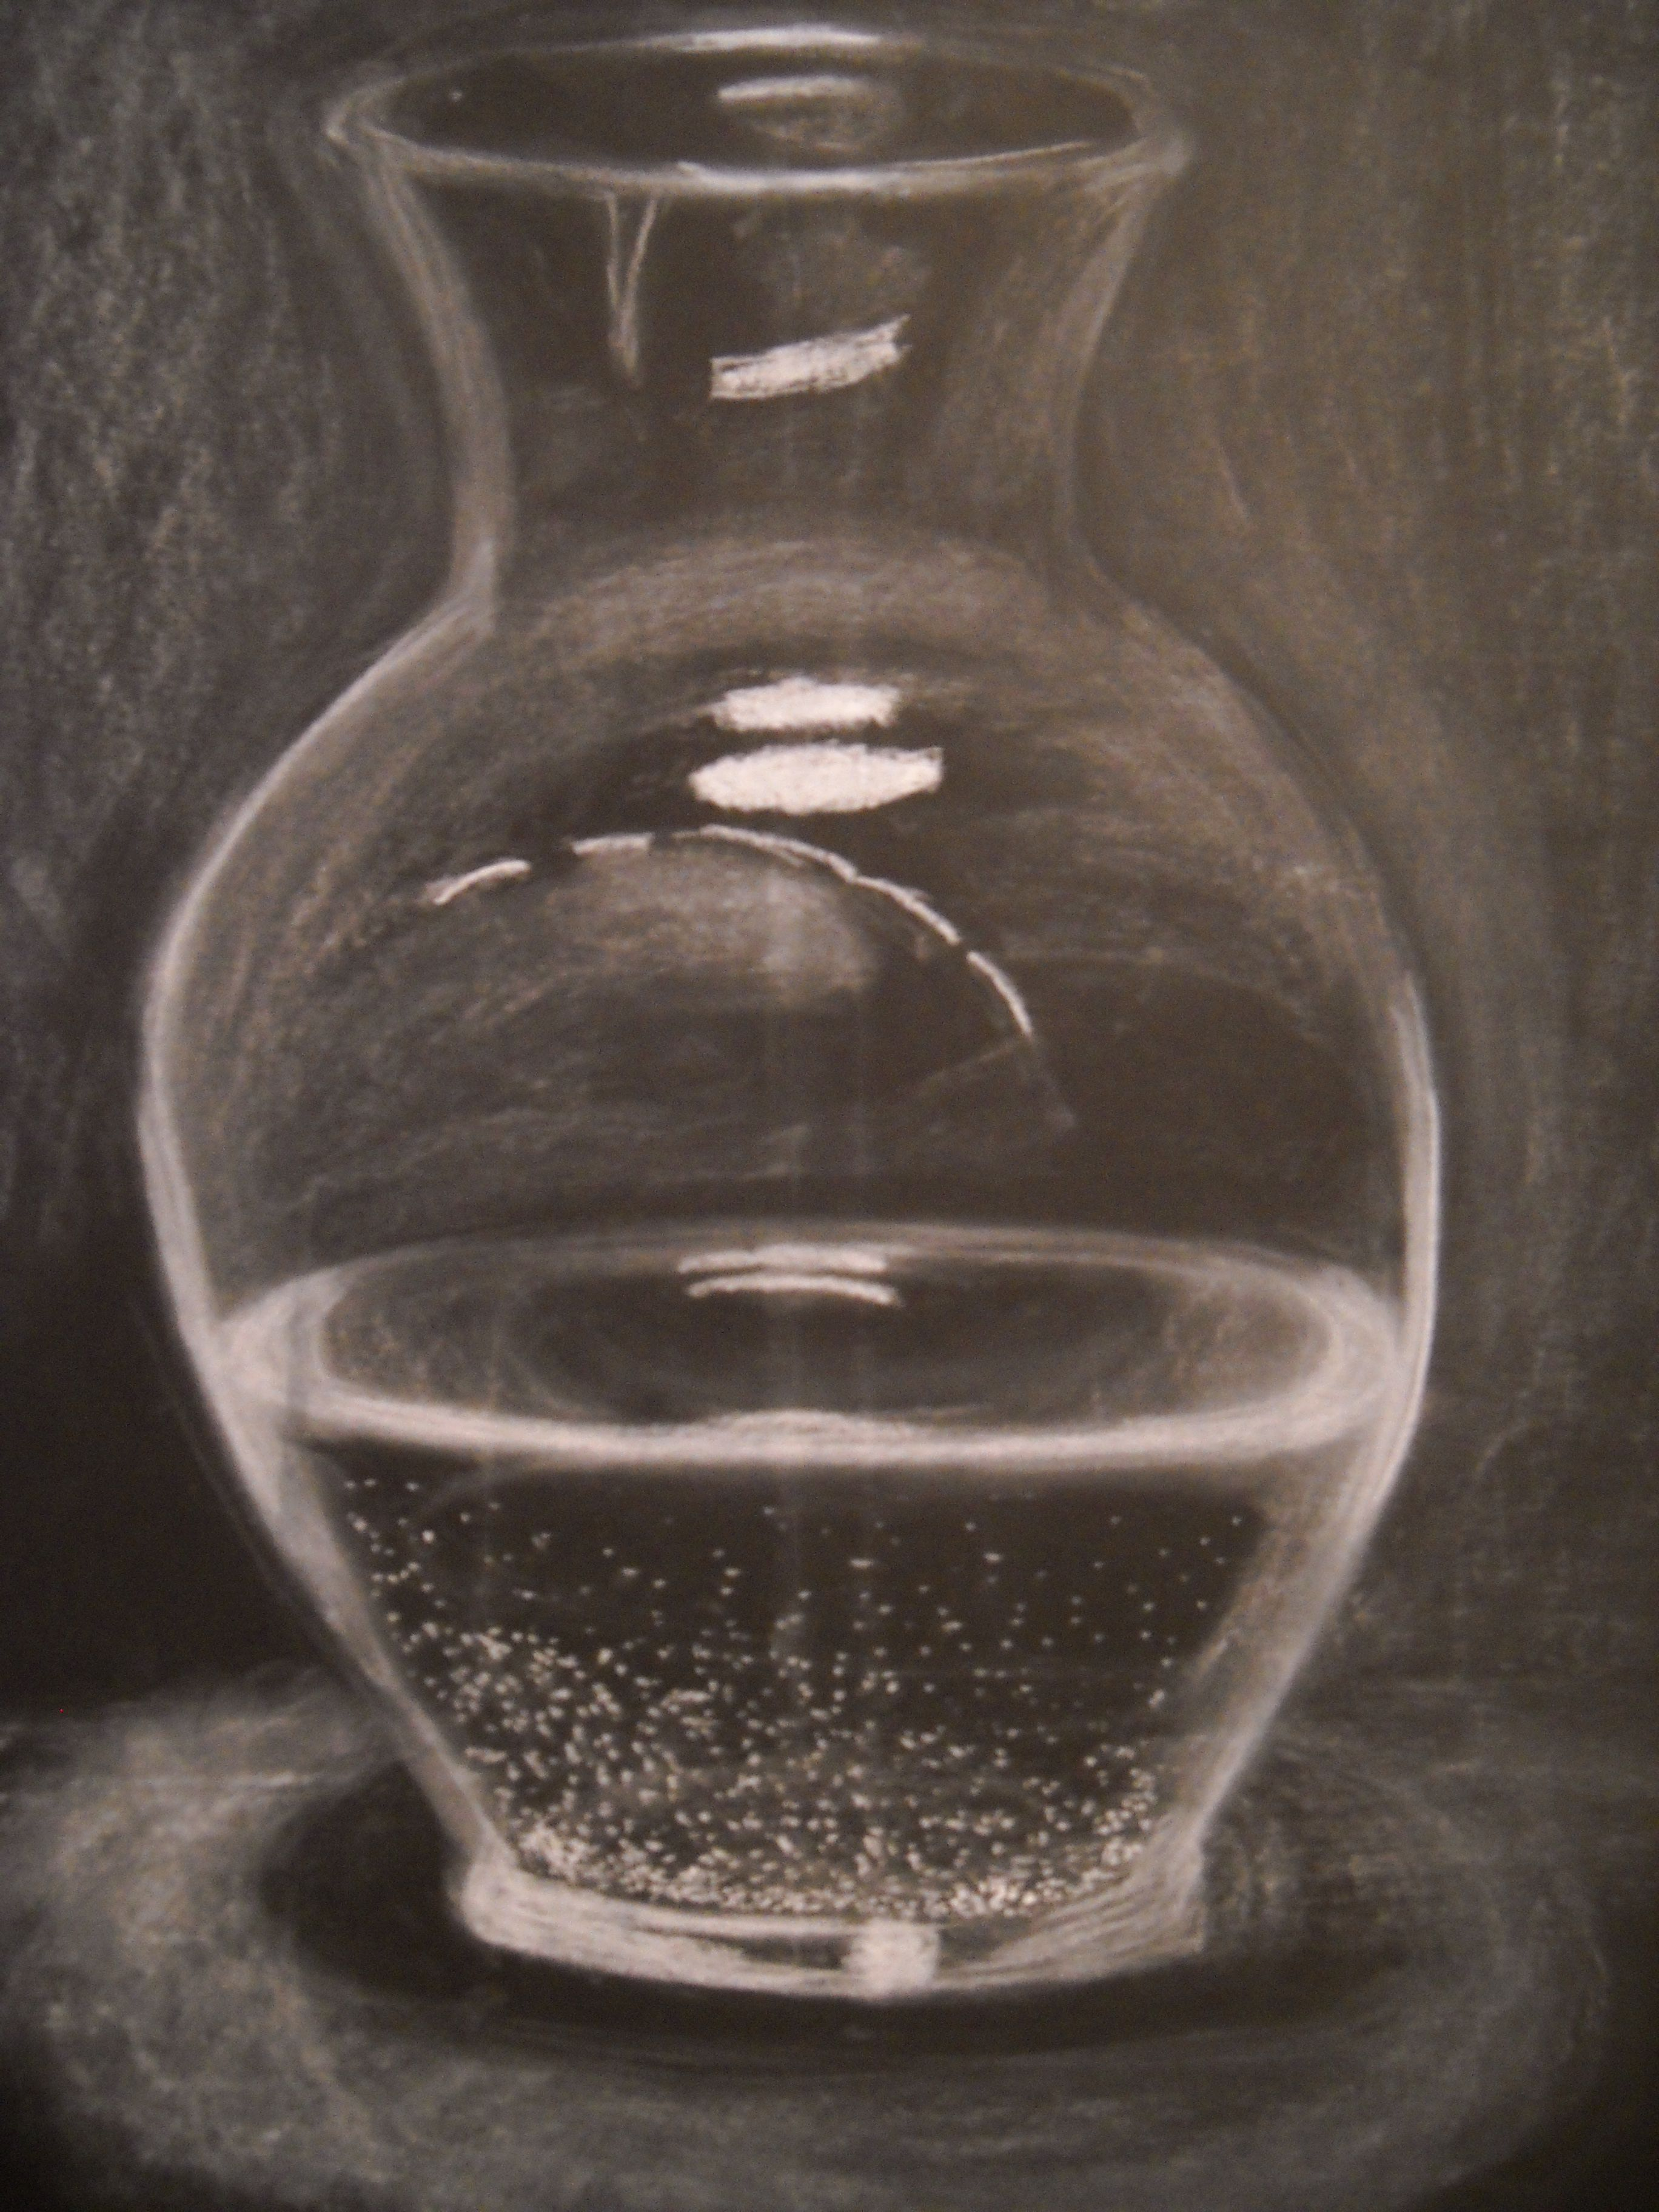 Glass Vase Filled With Water Done In White Chalk On Black Drawing Paper My Artwork